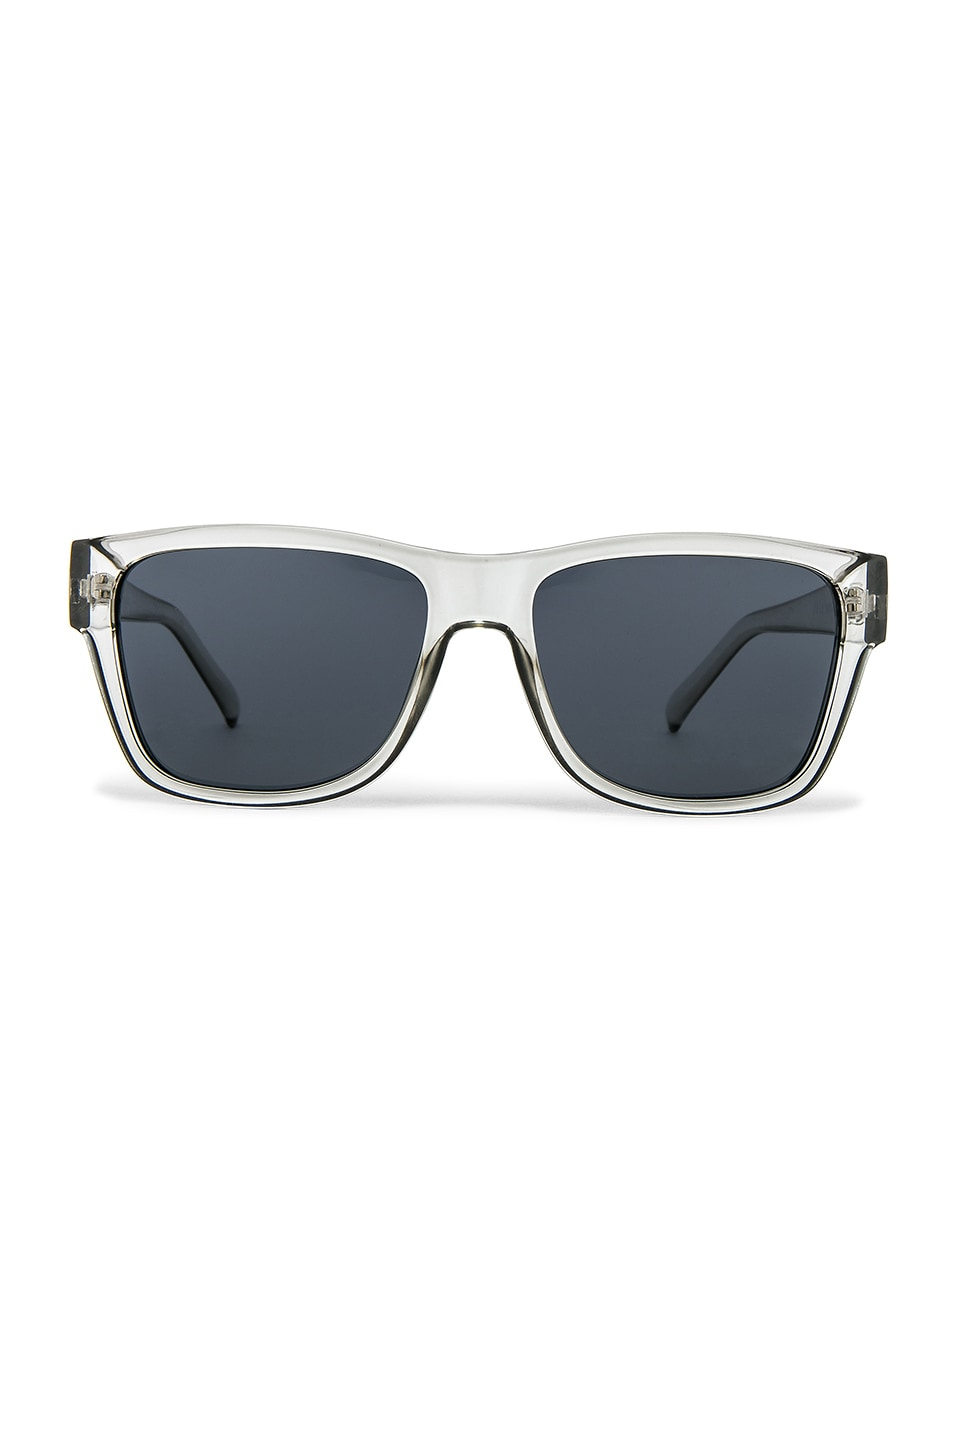 Le Specs The Force in Pewter & Smoke Mono